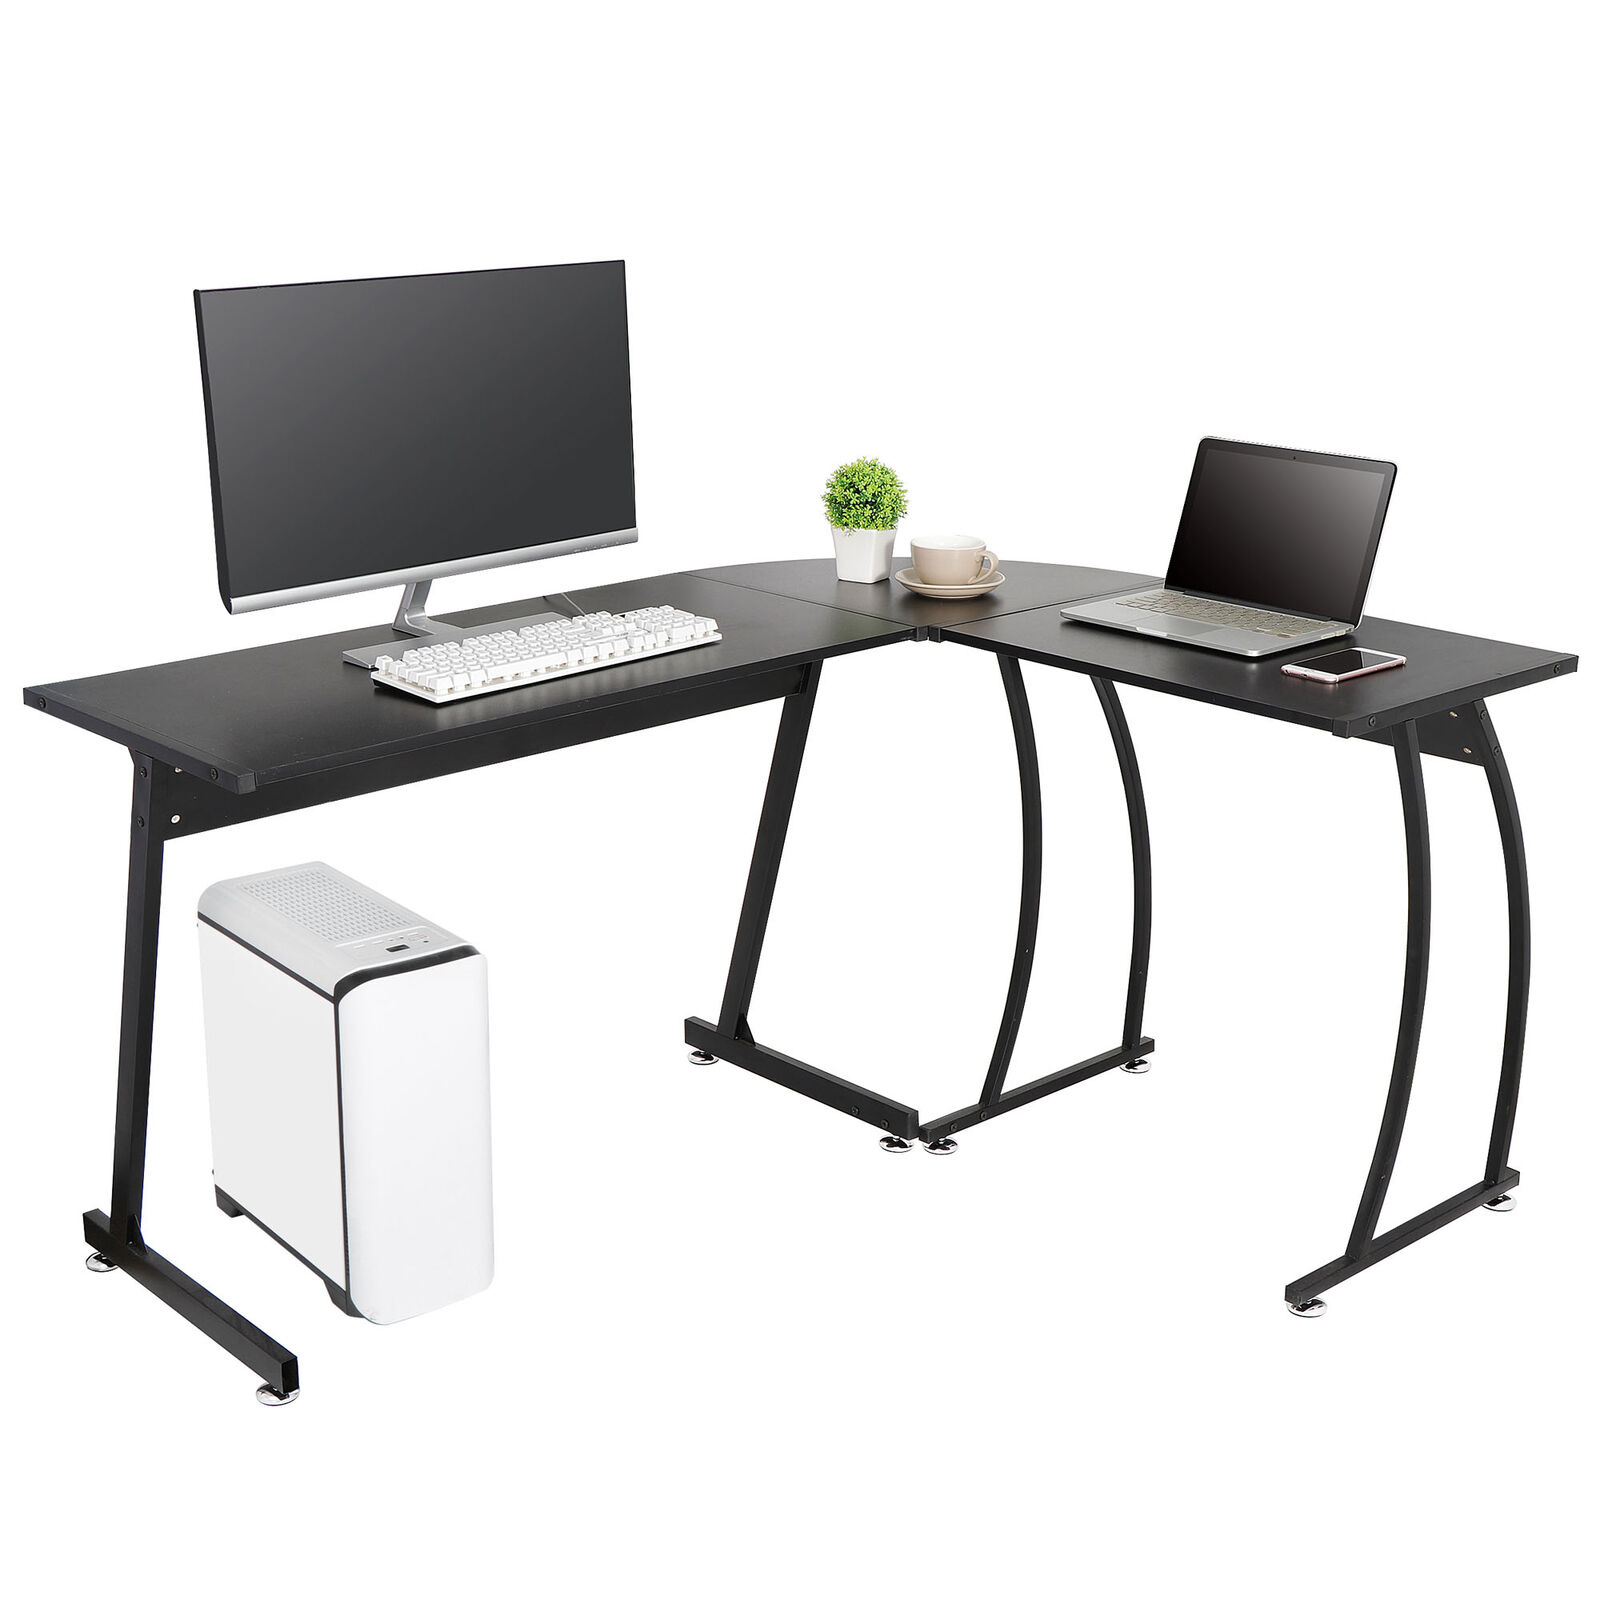 L-Shaped Corner Desk Computer Gaming Desk PC Table Office Writting Table 58″ Furniture